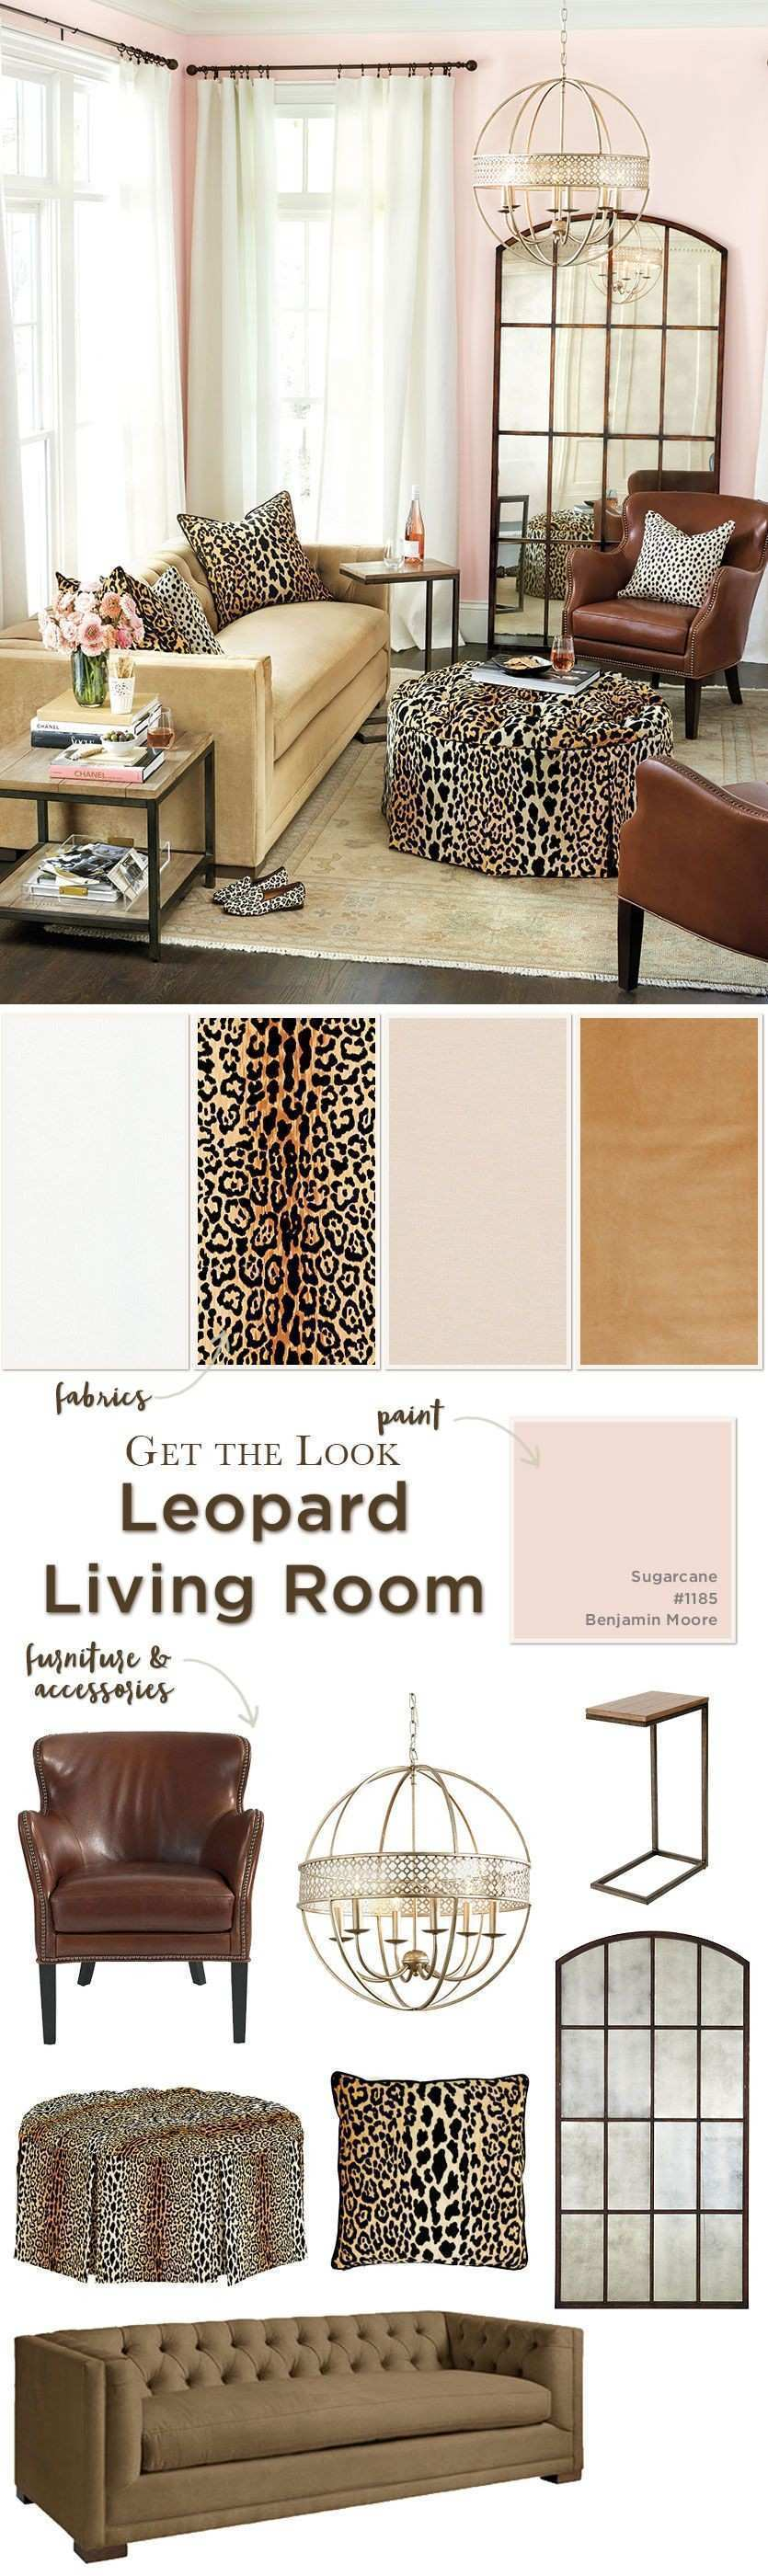 Get the look leopard living room Pinterest